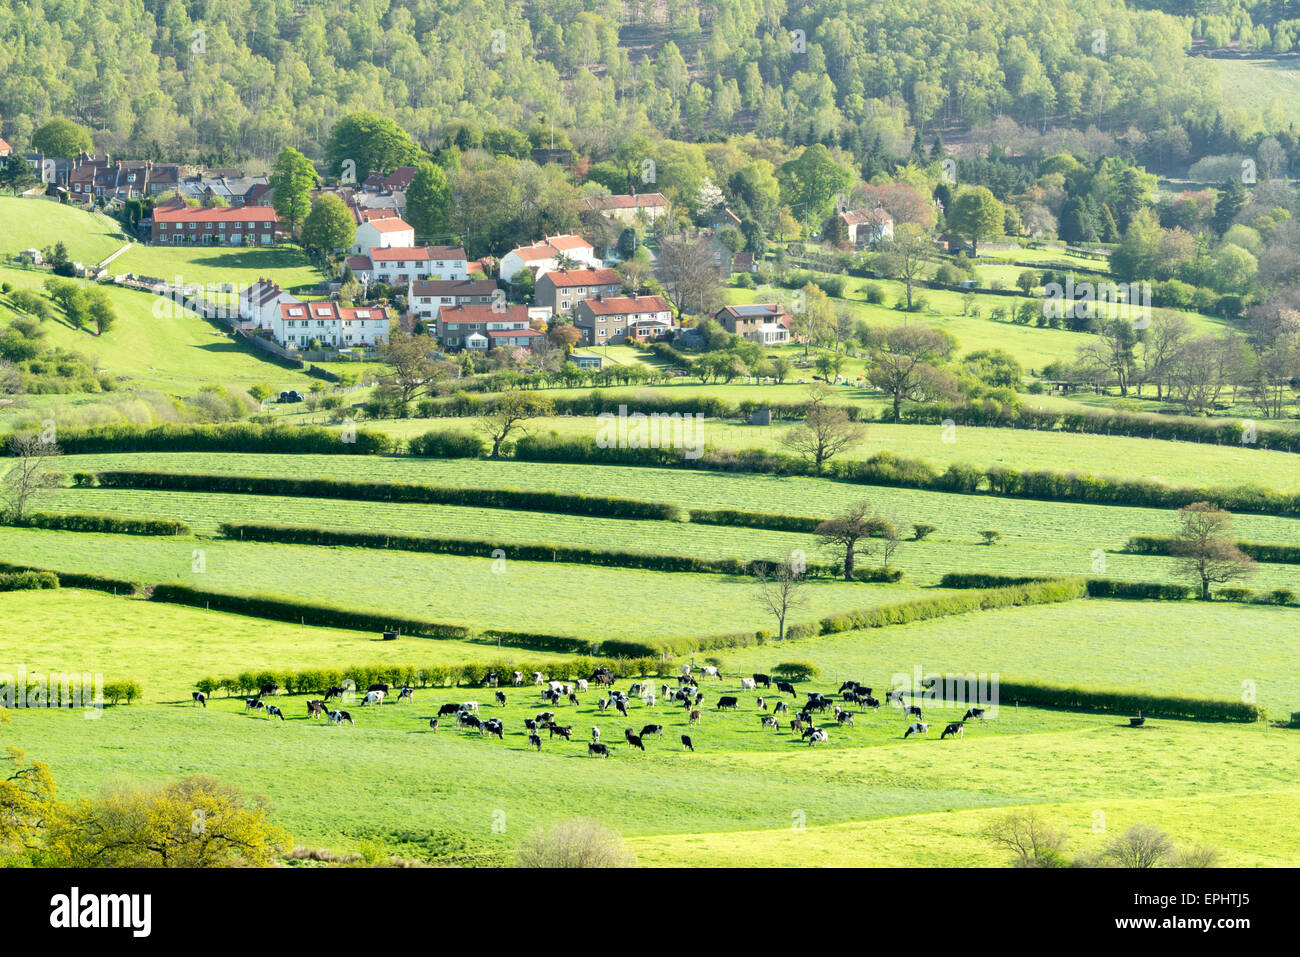 Cattle Grazing in Danby Dale south from Castleton in May 2015 - Stock Image